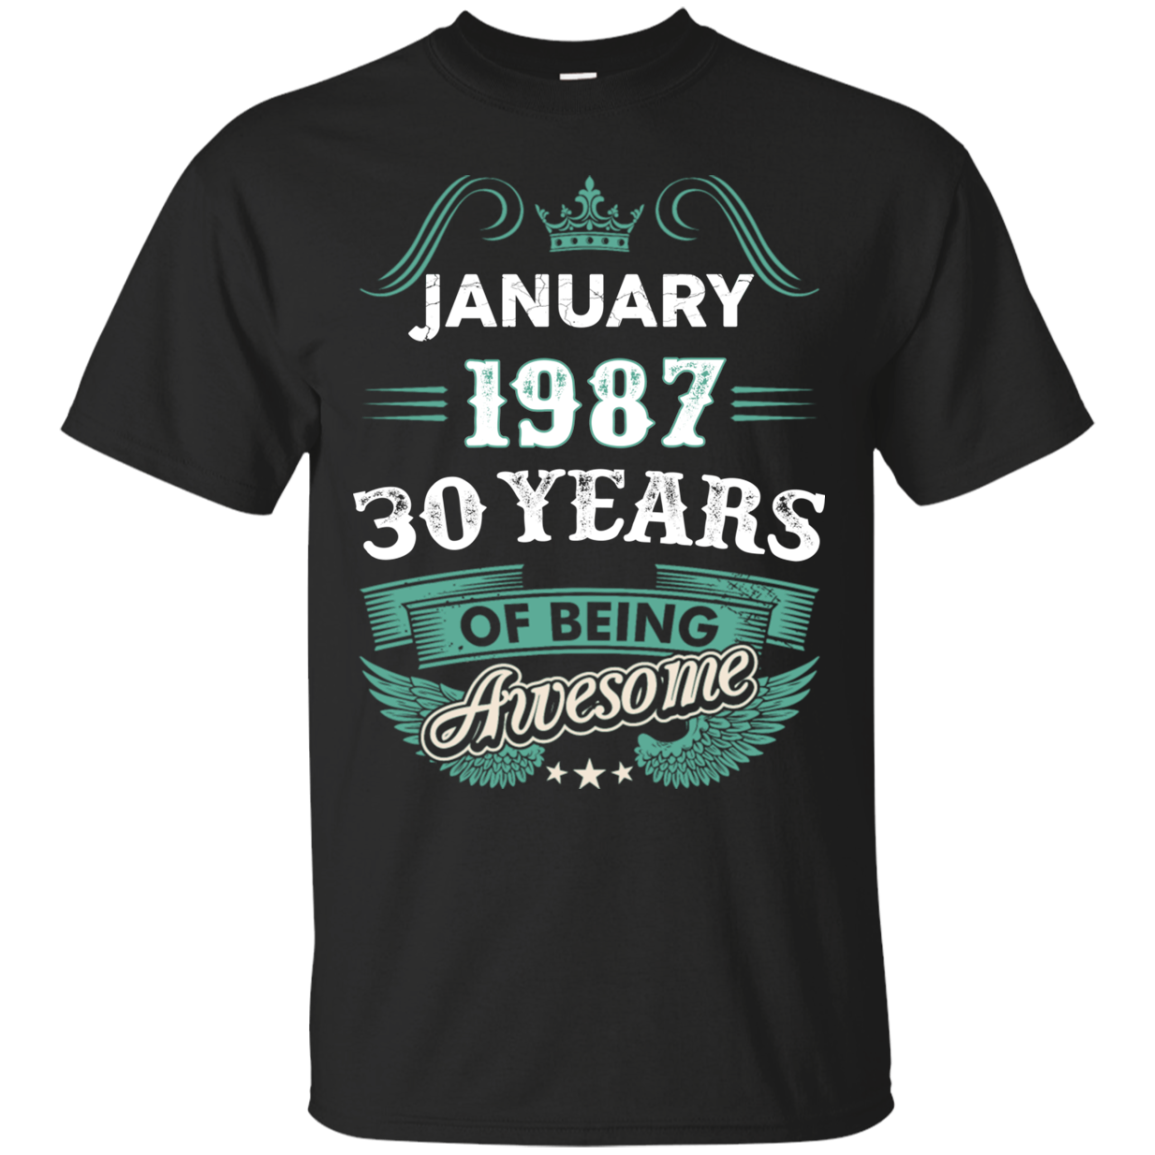 January 1987 30 Years of being Awesome t shirt Men